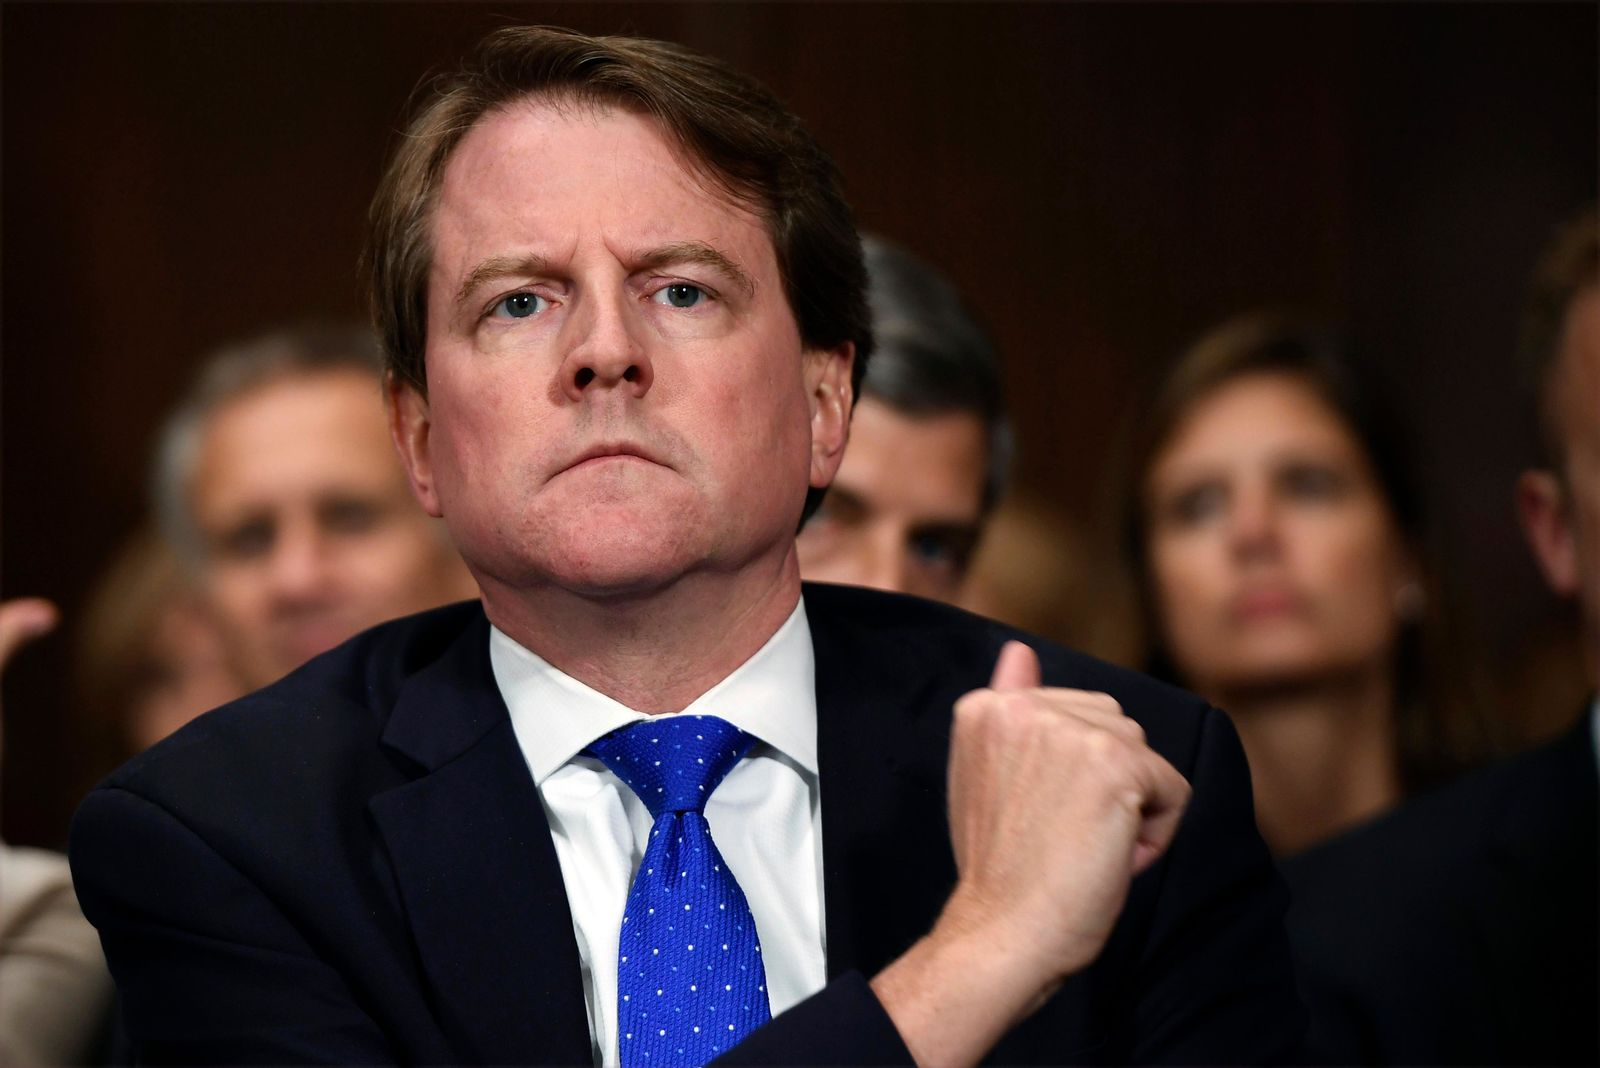 FILE - In this Sept. 27, 2018, file photo, White House counsel Don McGahn listens as Supreme court nominee Brett Kavanaugh testifies before the Senate Judiciary Committee on Capitol Hill in Washington. (Saul Loeb/Pool Photo via AP, File)